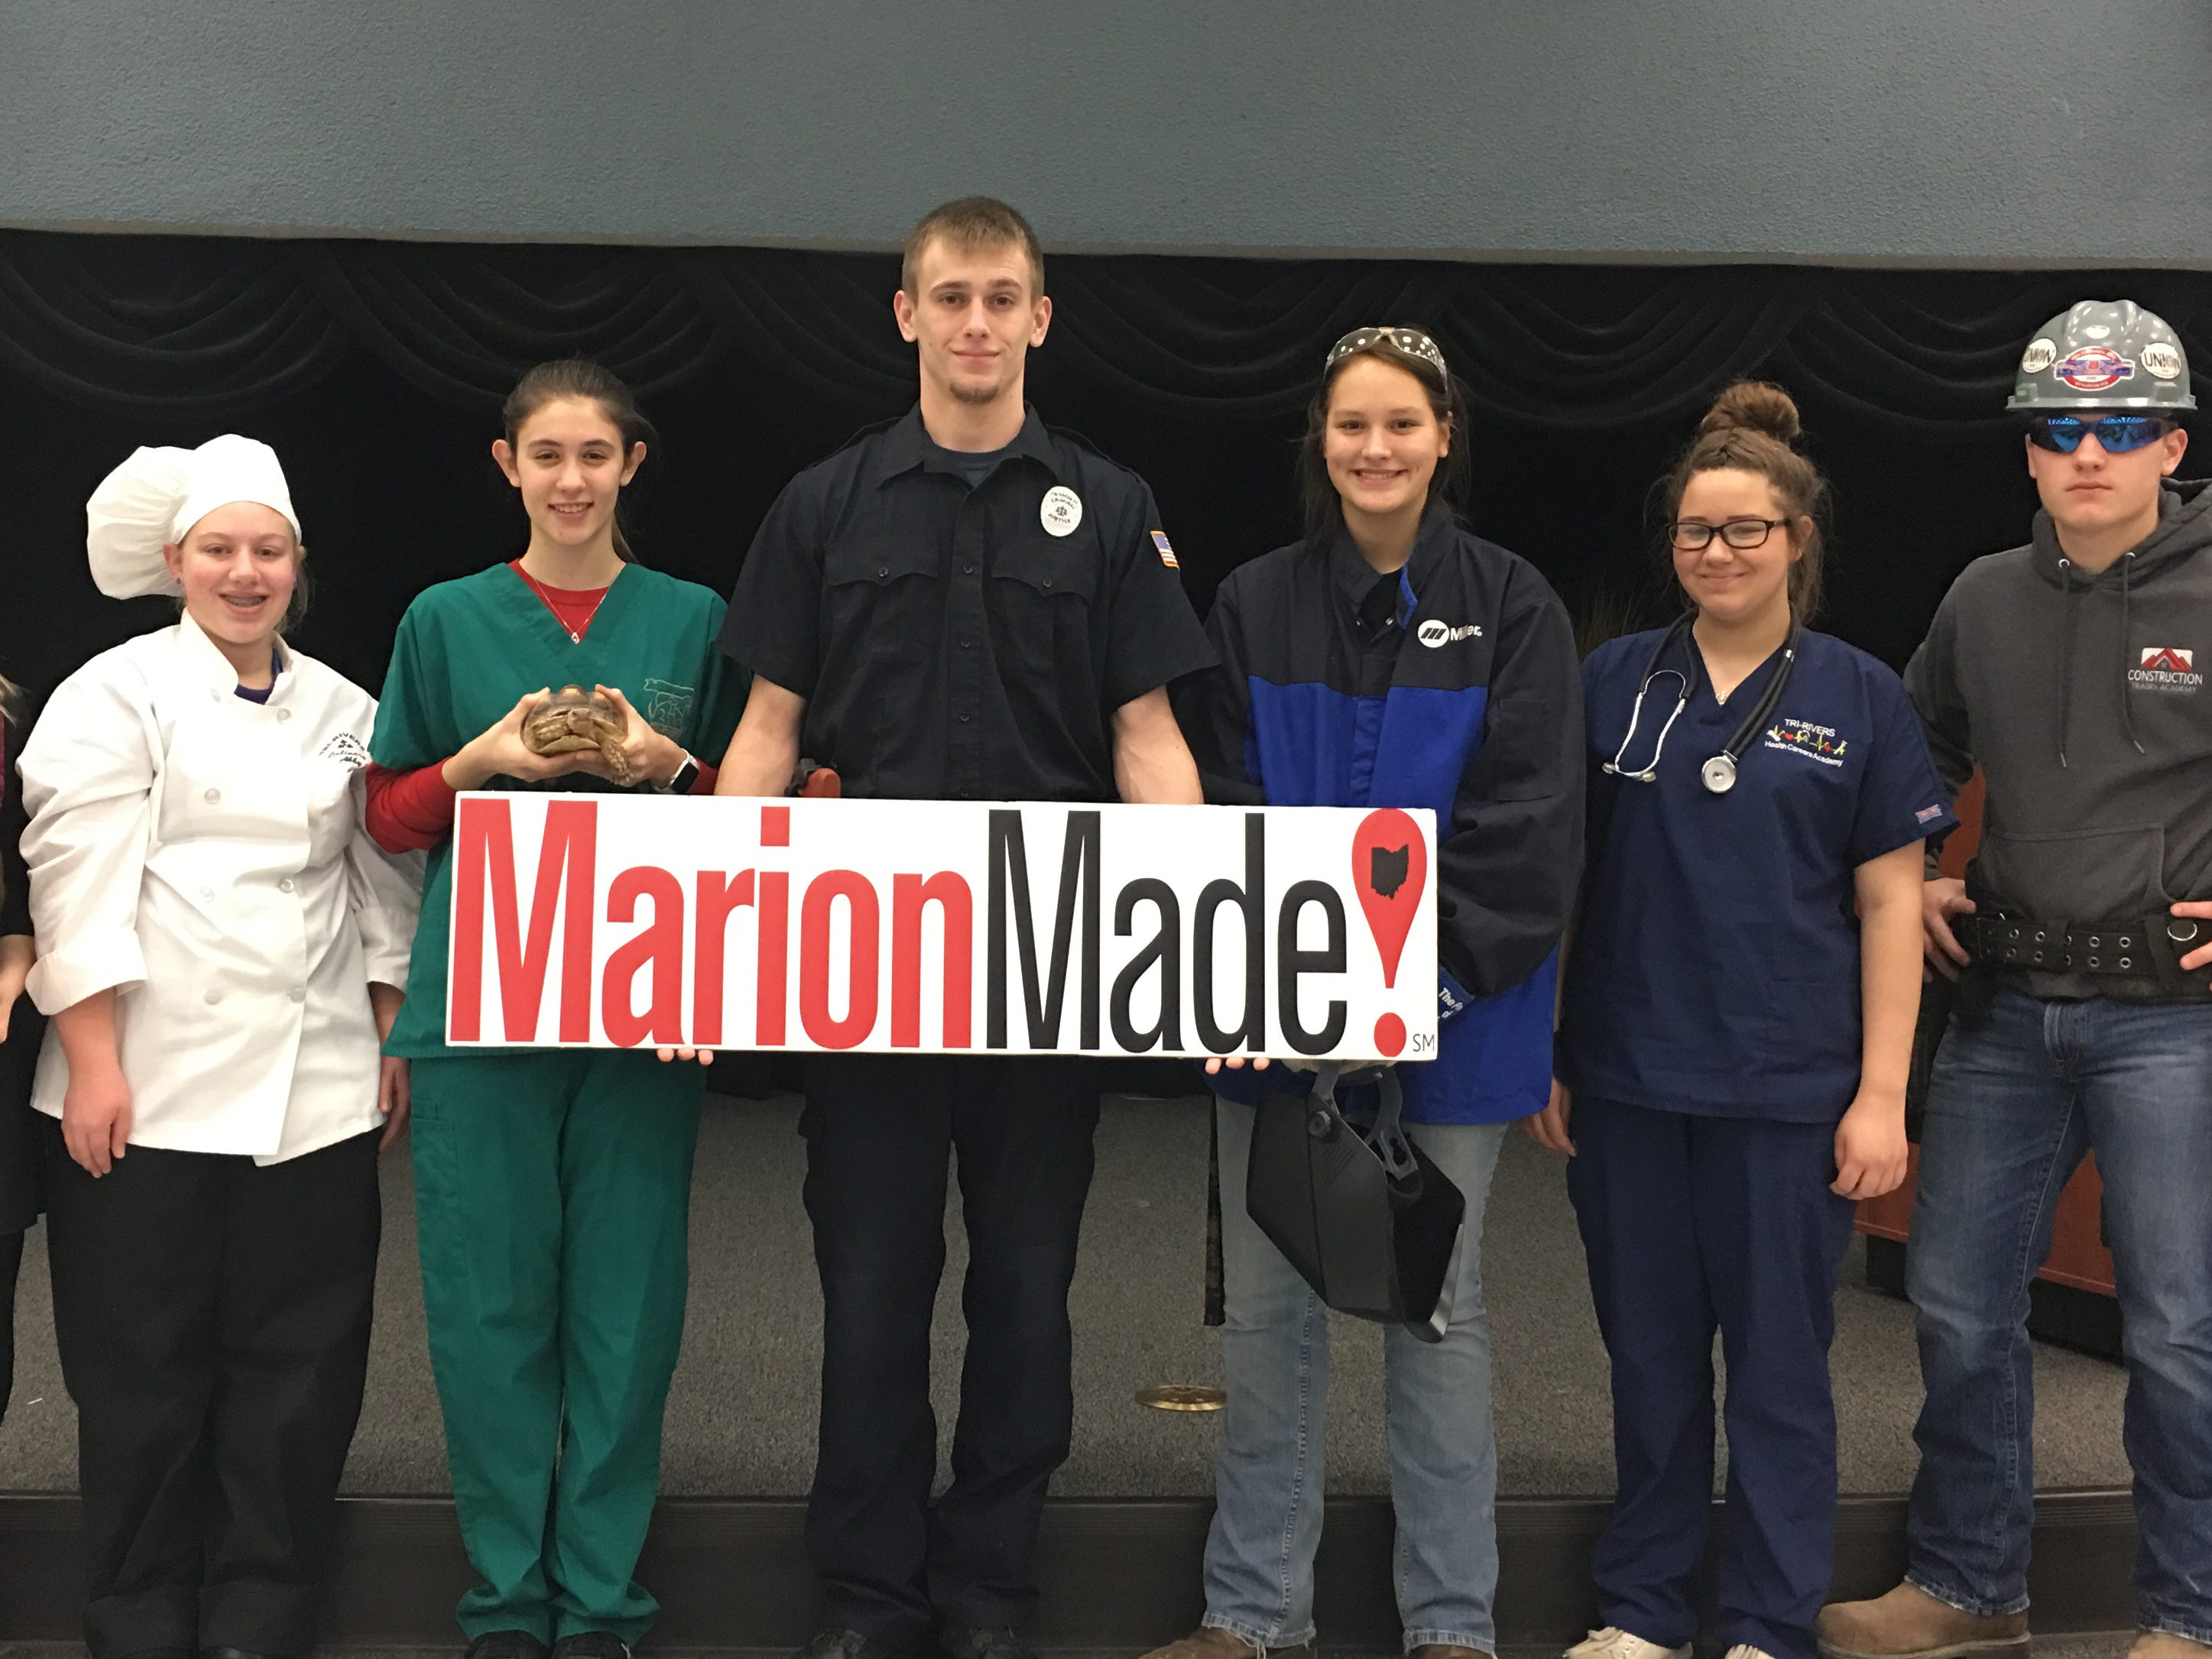 More than 100 local organizations have taken up the MarionMade! cause of community pride and unity. Schools like Tri-Rivers Career Center proudly proclaim that they are MarionMade!